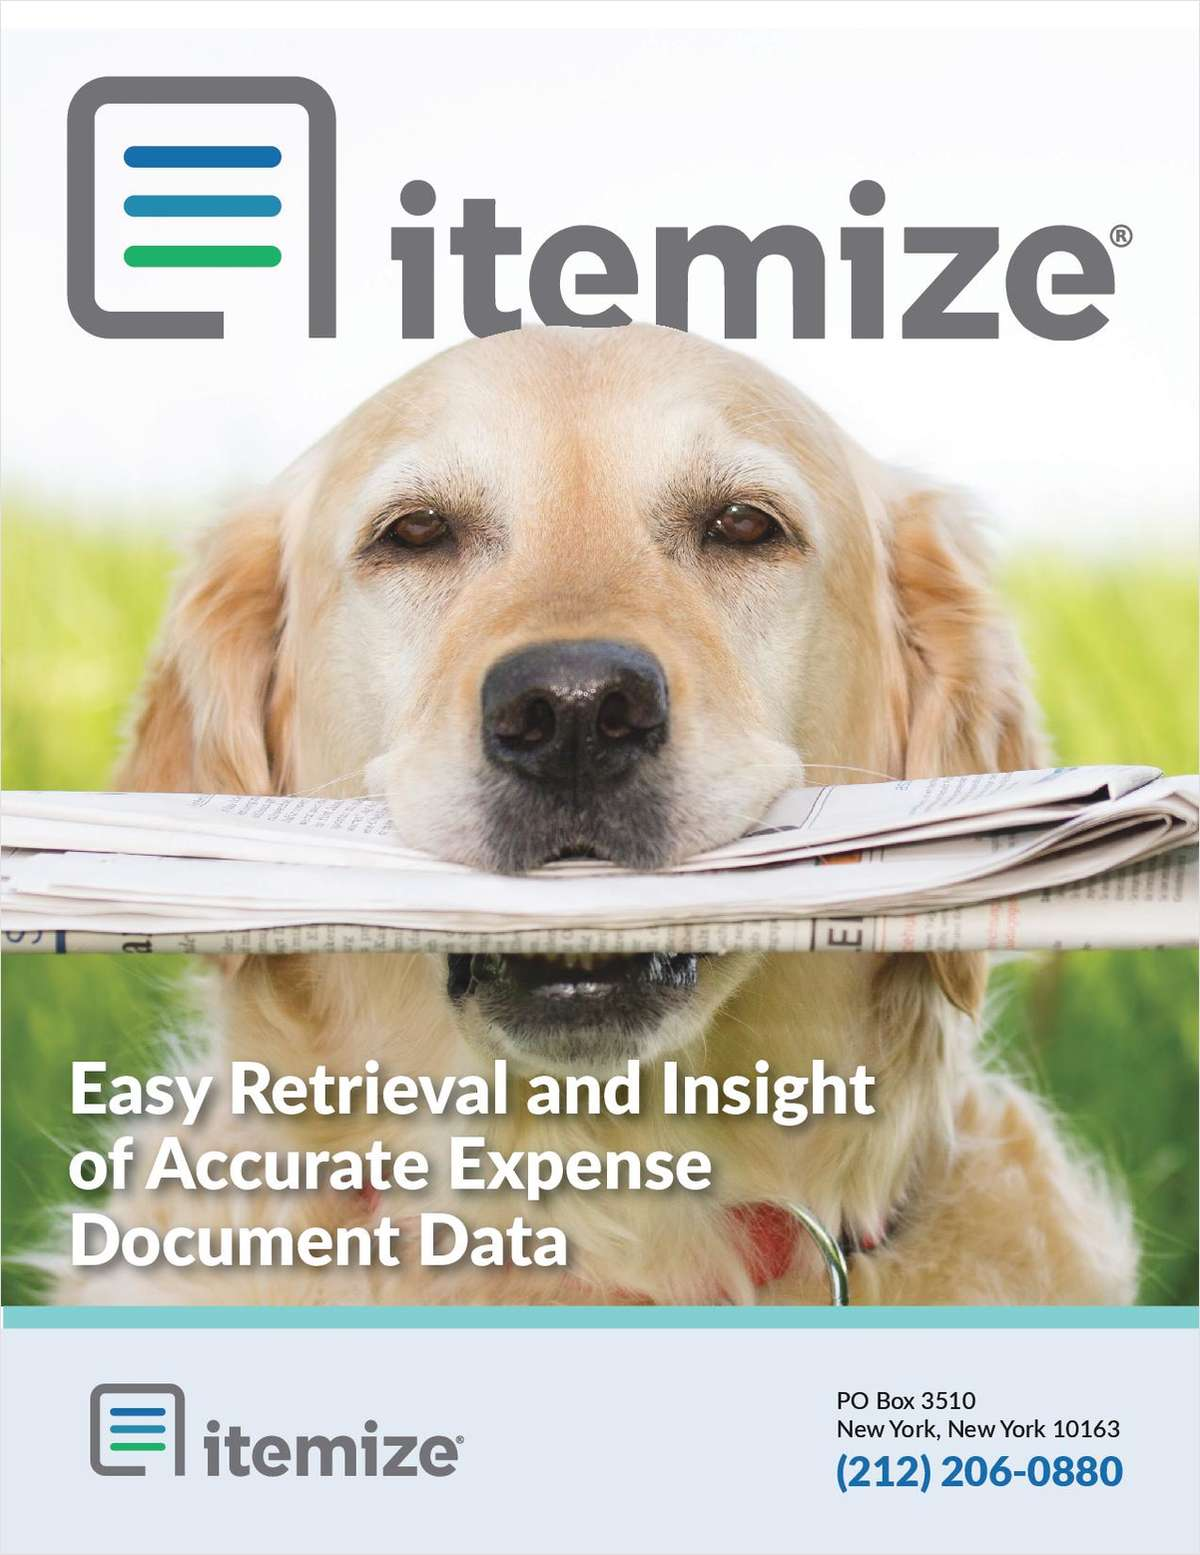 Easy Retrieval and Insights from Expense Documents